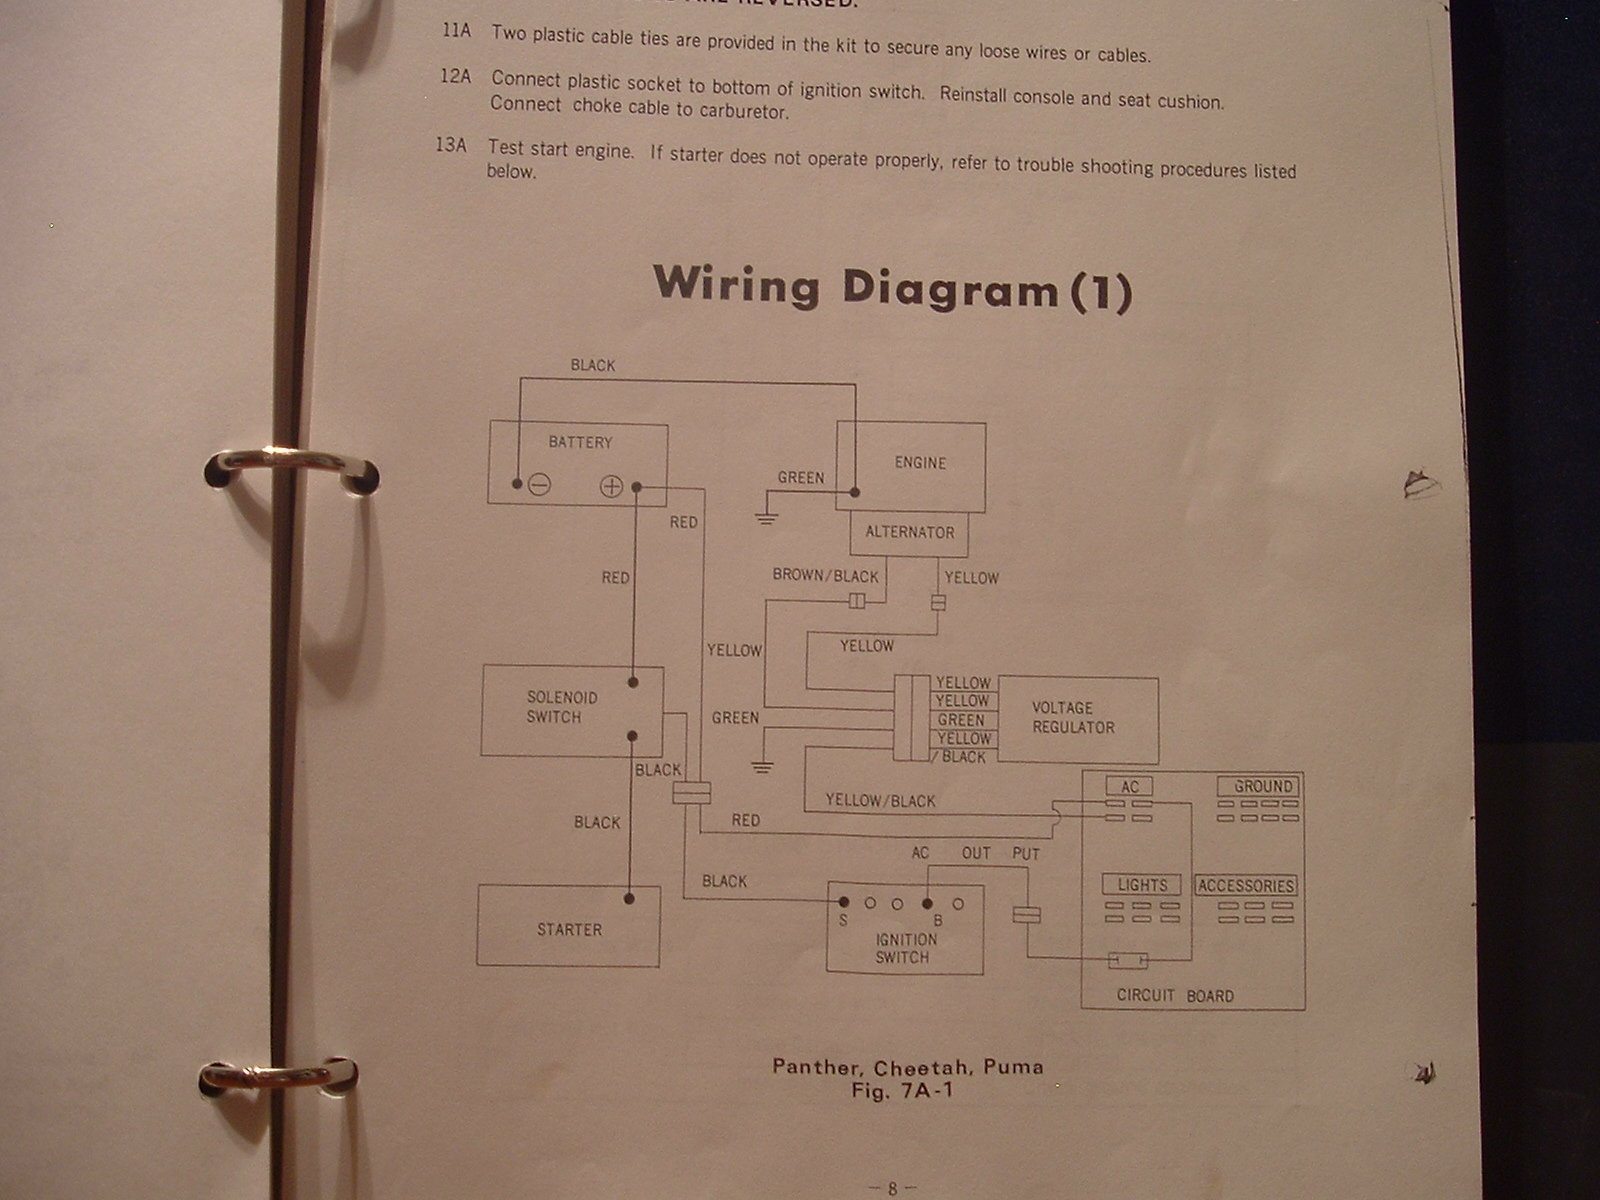 isuzu panther wiring diagram engine isuzu image 1976 arctic cat panther 5000 wiring diagram jodebal com on isuzu panther wiring diagram engine